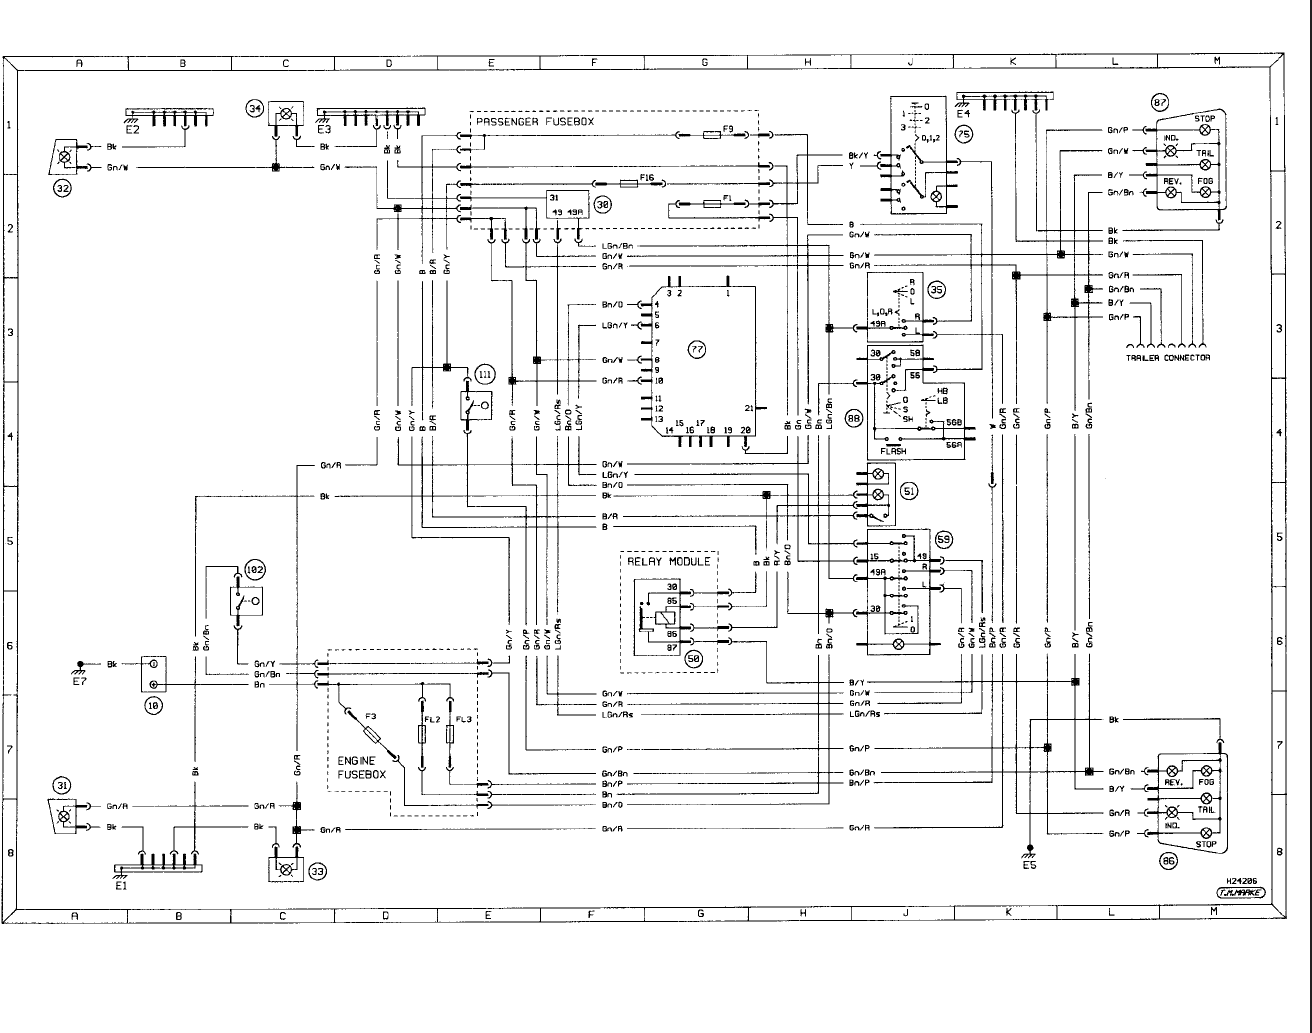 hight resolution of rover 216 wiring diagram wiring diagram for you rover 216 wiring diagram rover 216 wiring diagram